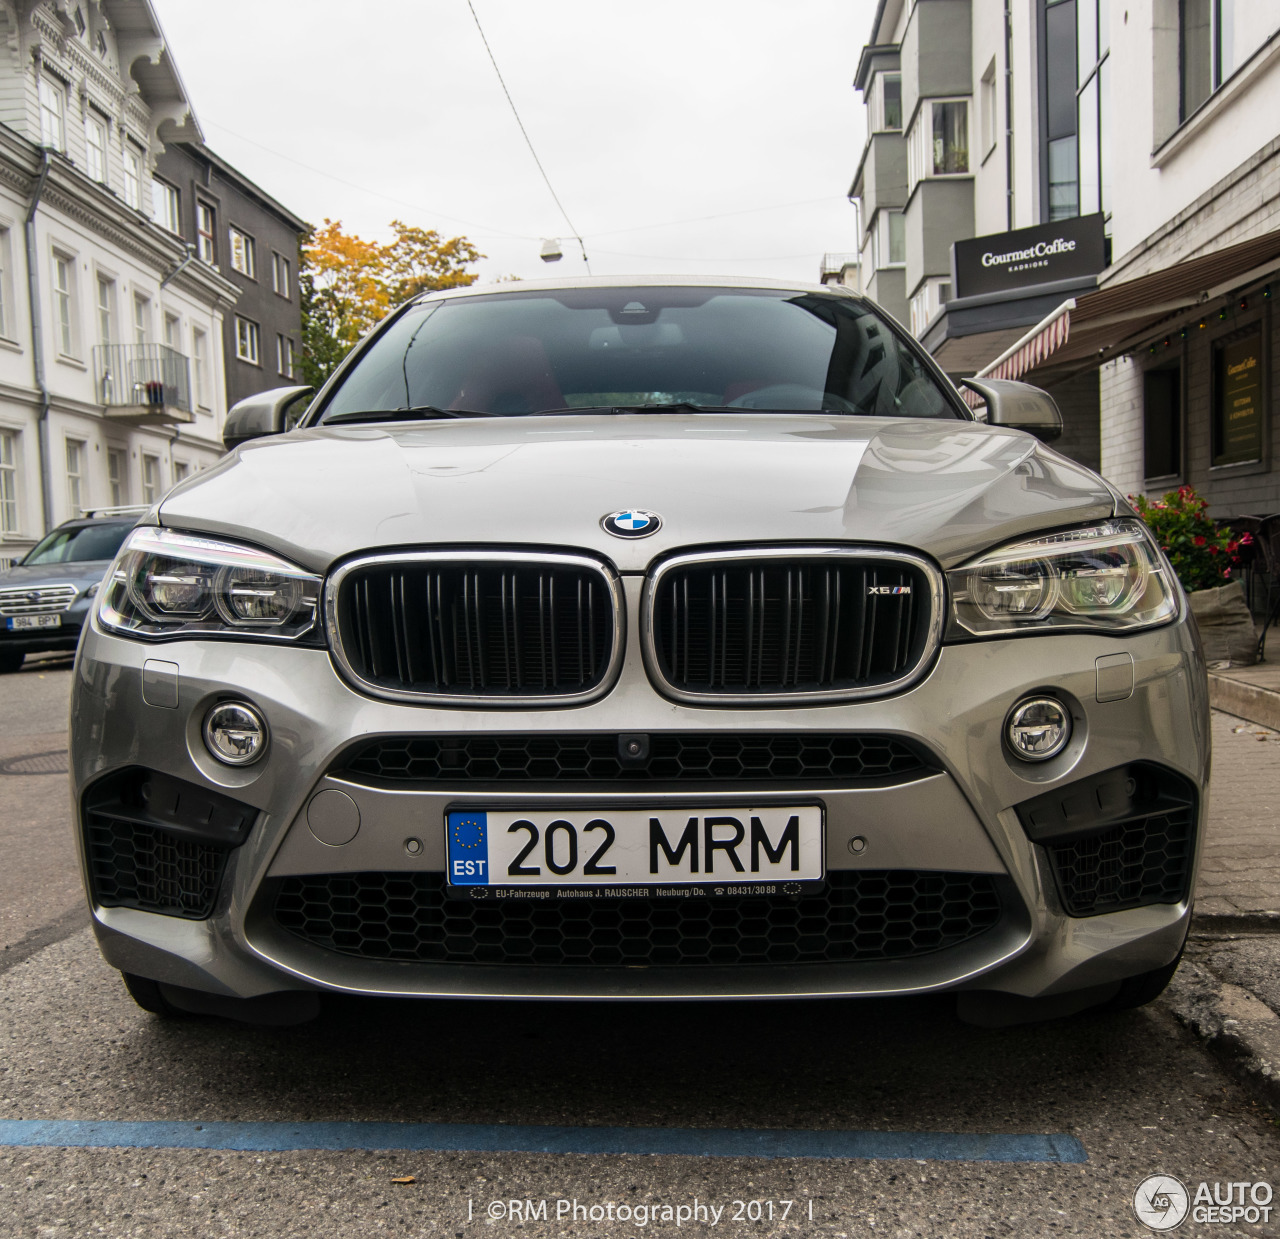 Bmw X6 Weight: 1 October 2017